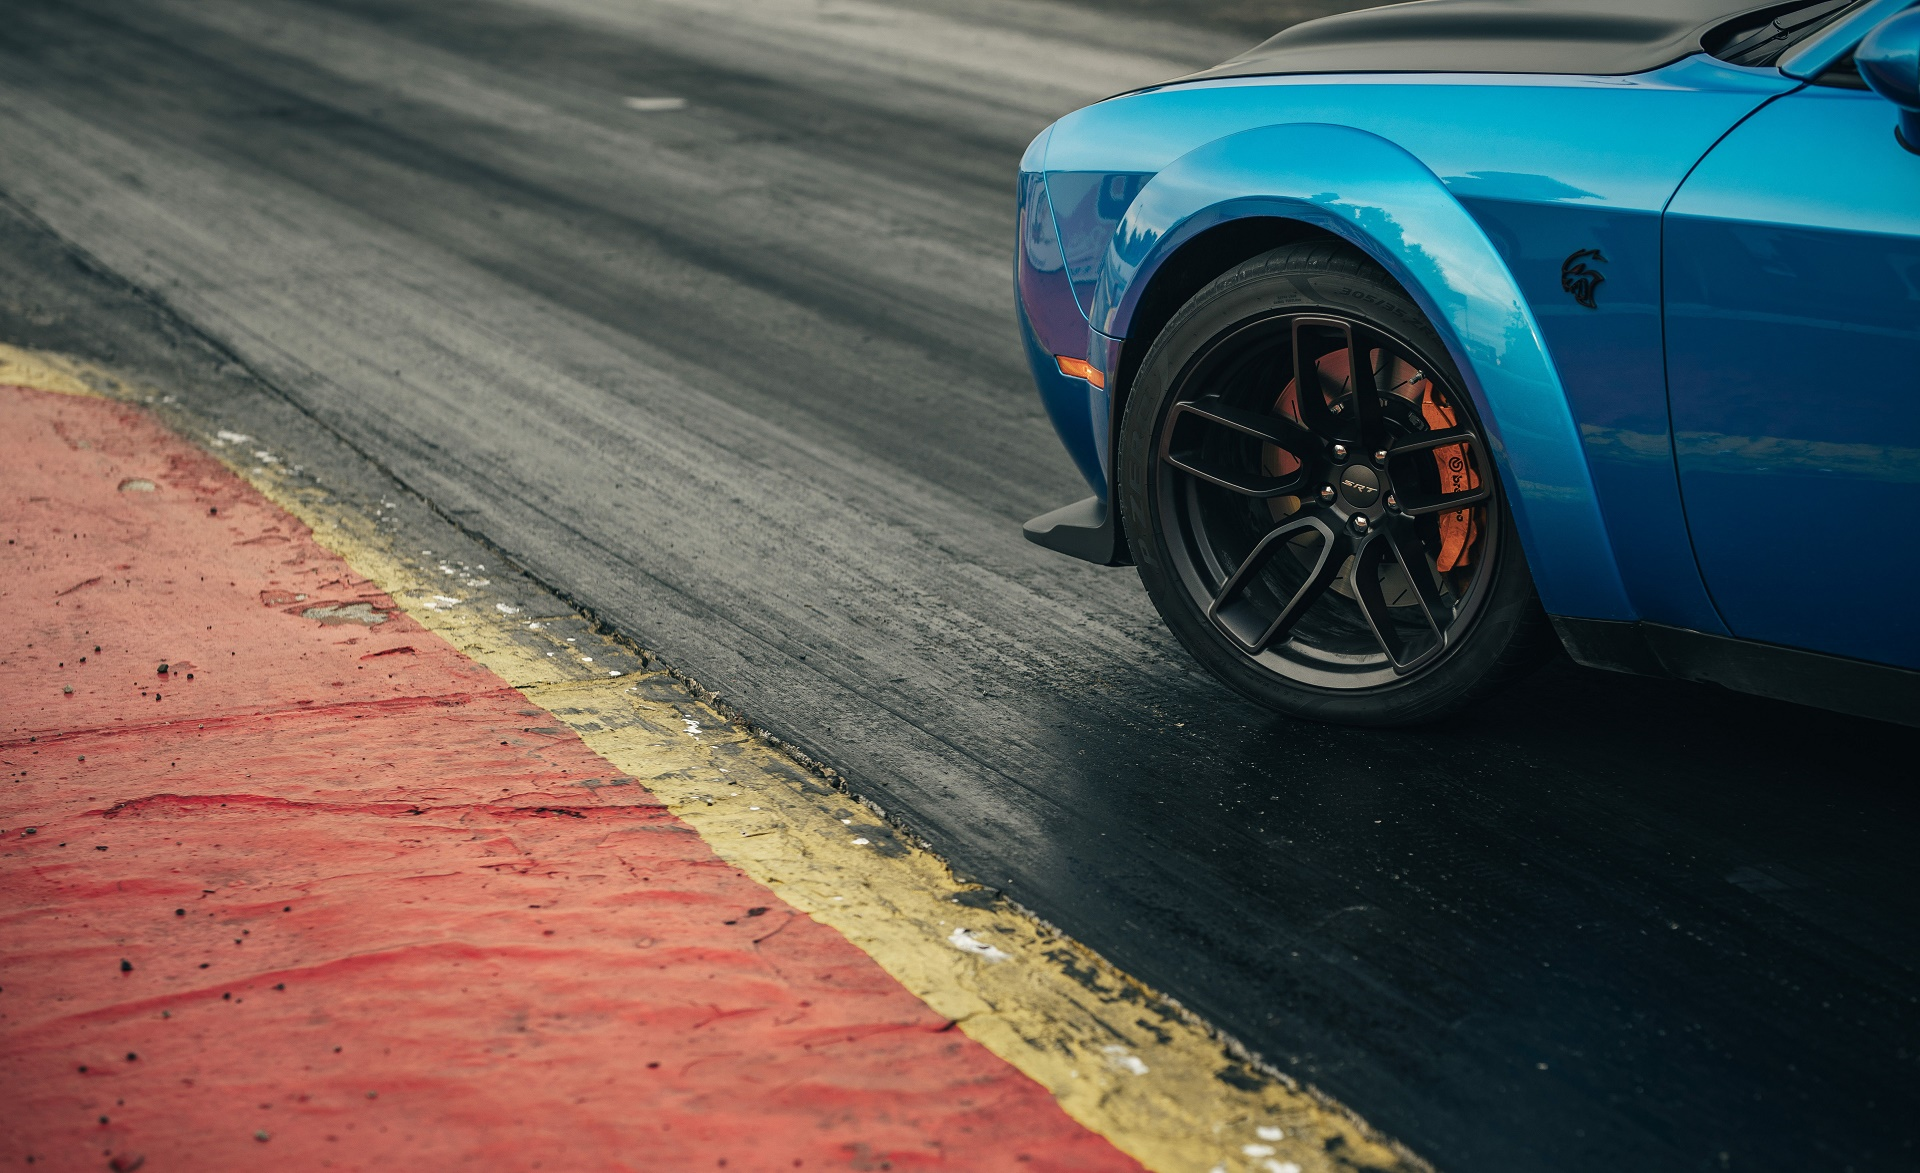 2019 Dodge Challenger SRT Hellcat Redeye Wheel Wallpaper (13)